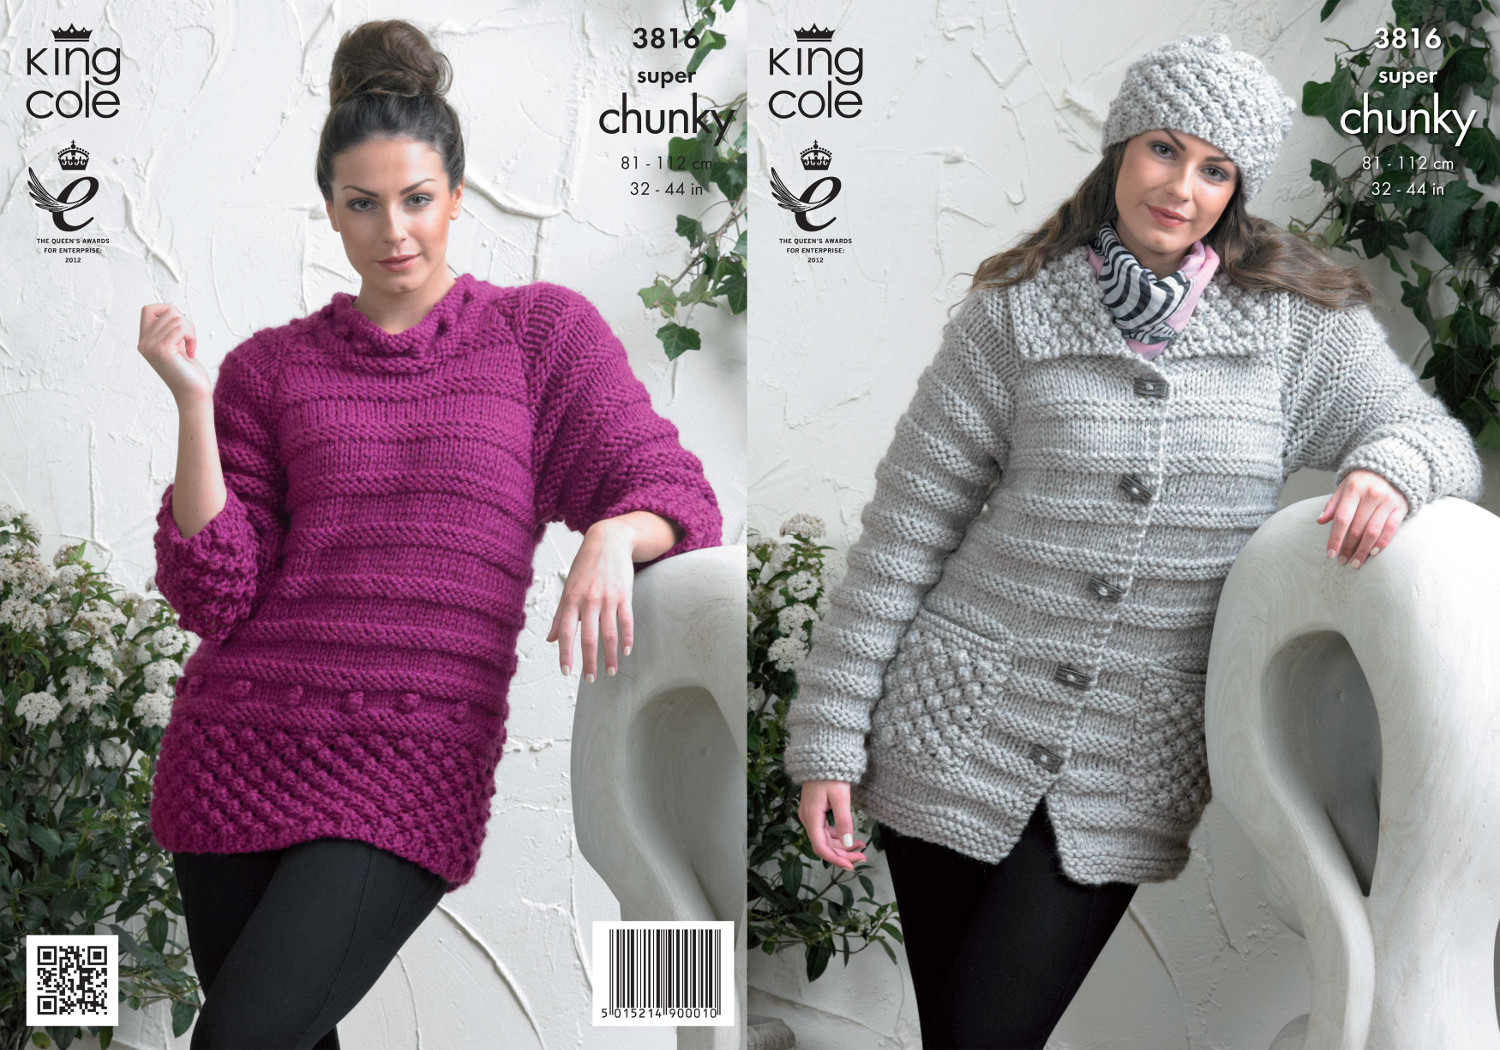 King Cole Ladies Knitting Pattern Womens Super Chunky Jacket ...